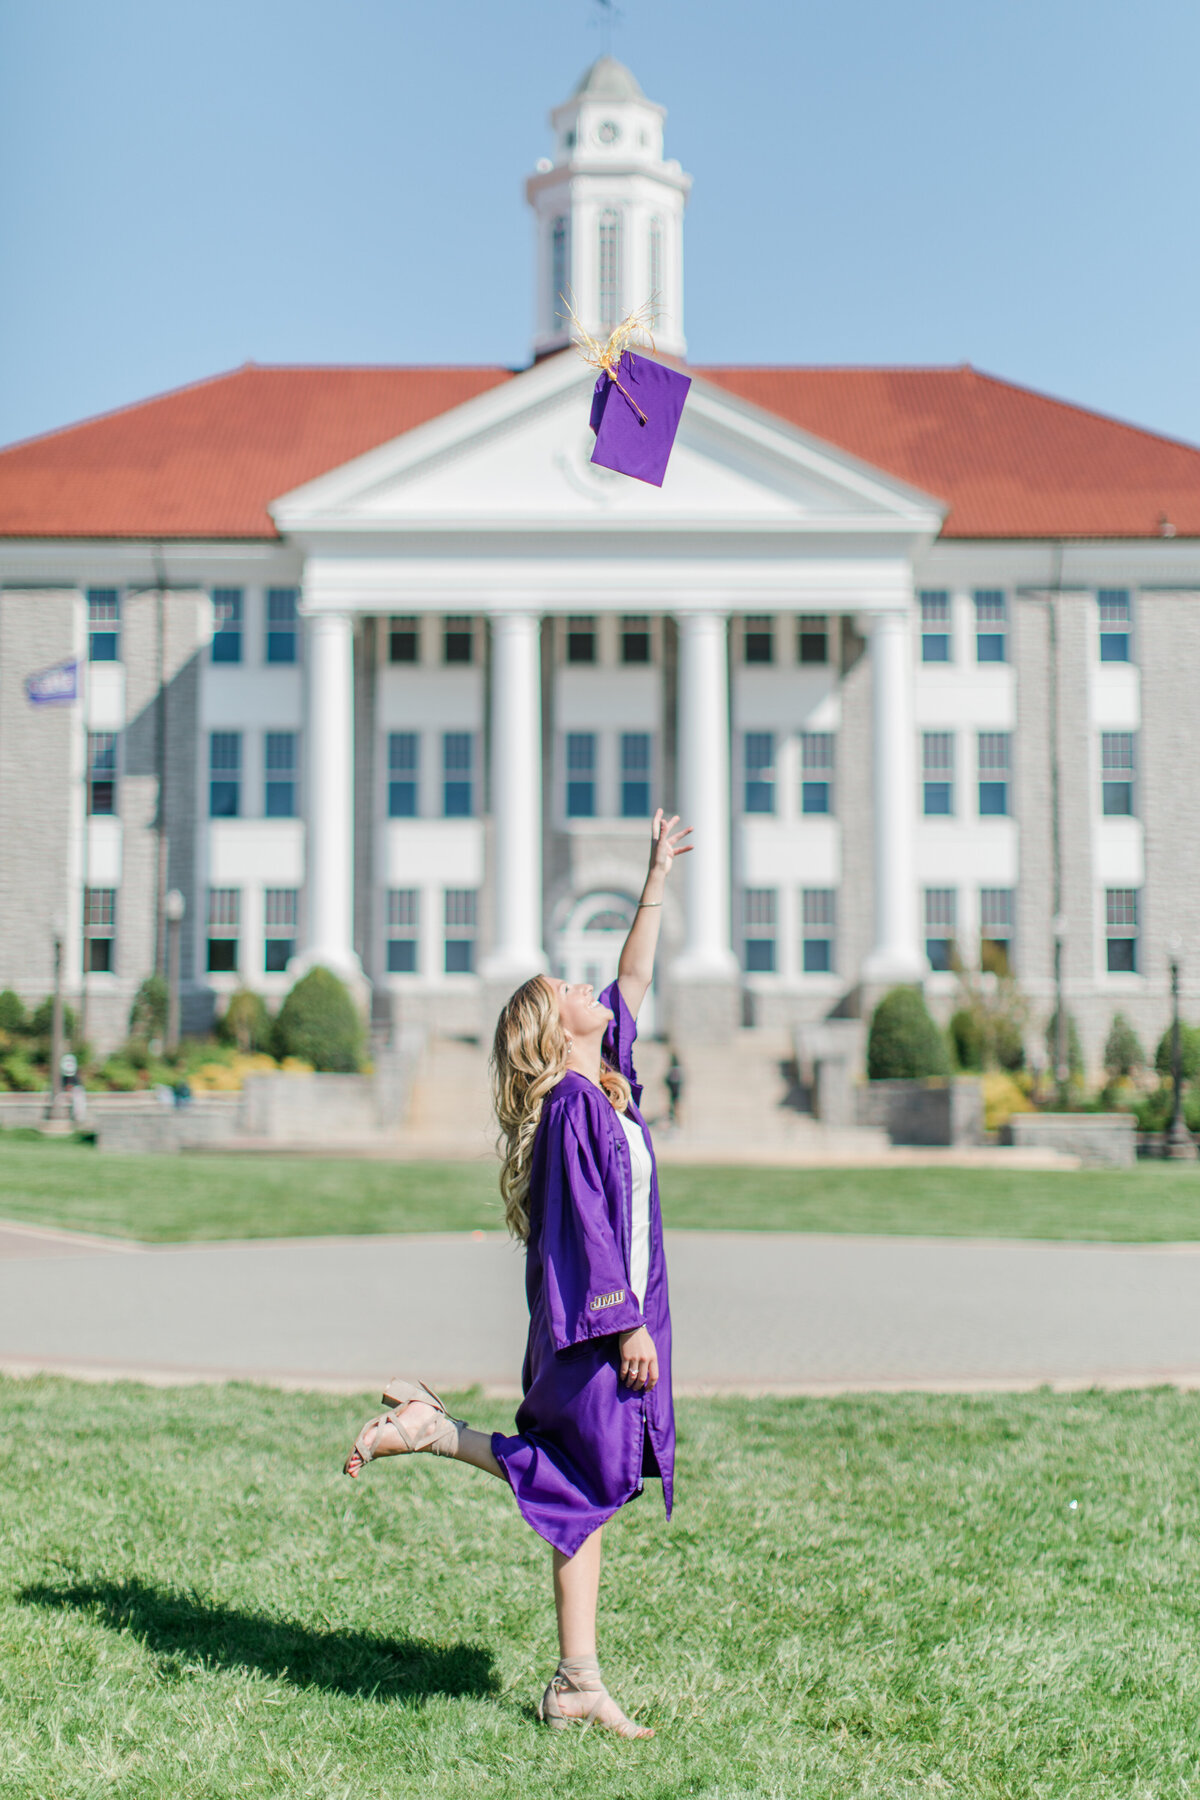 Brooke_Gore_JMU_Senior_Graduation_Session_2020_Angelika_Johns_Photography-2457